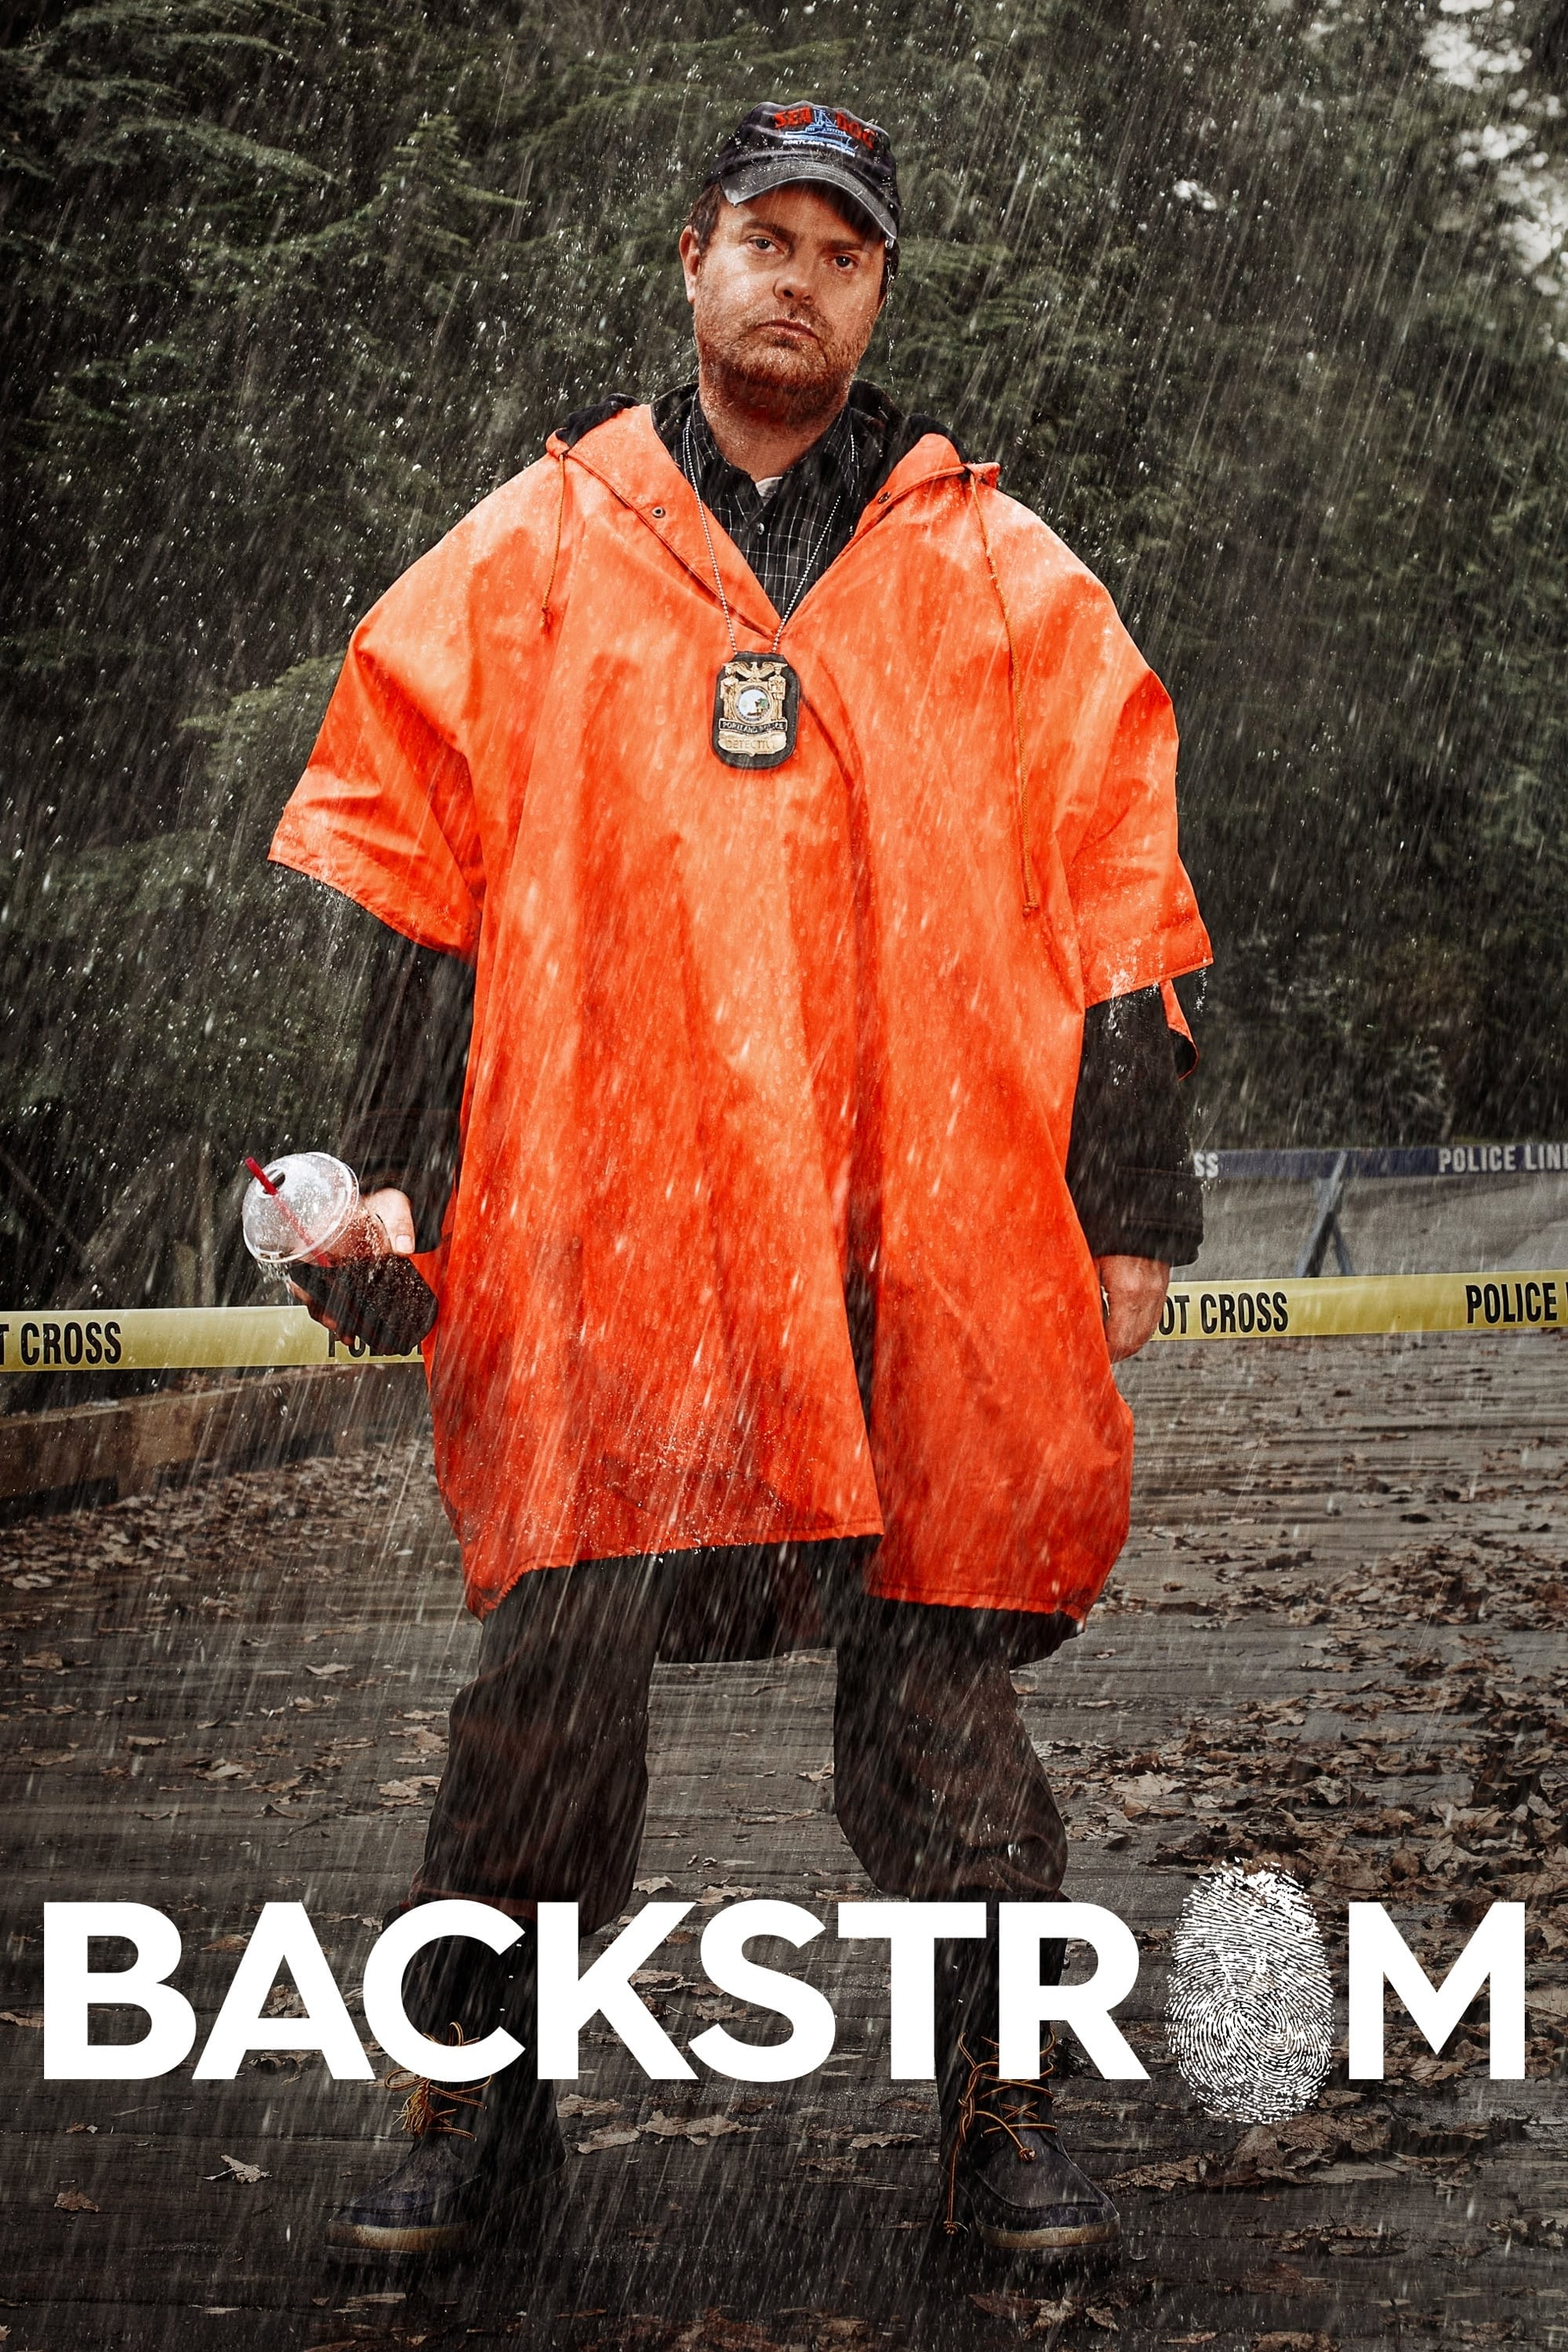 Backstrom TV Shows About Police Detective